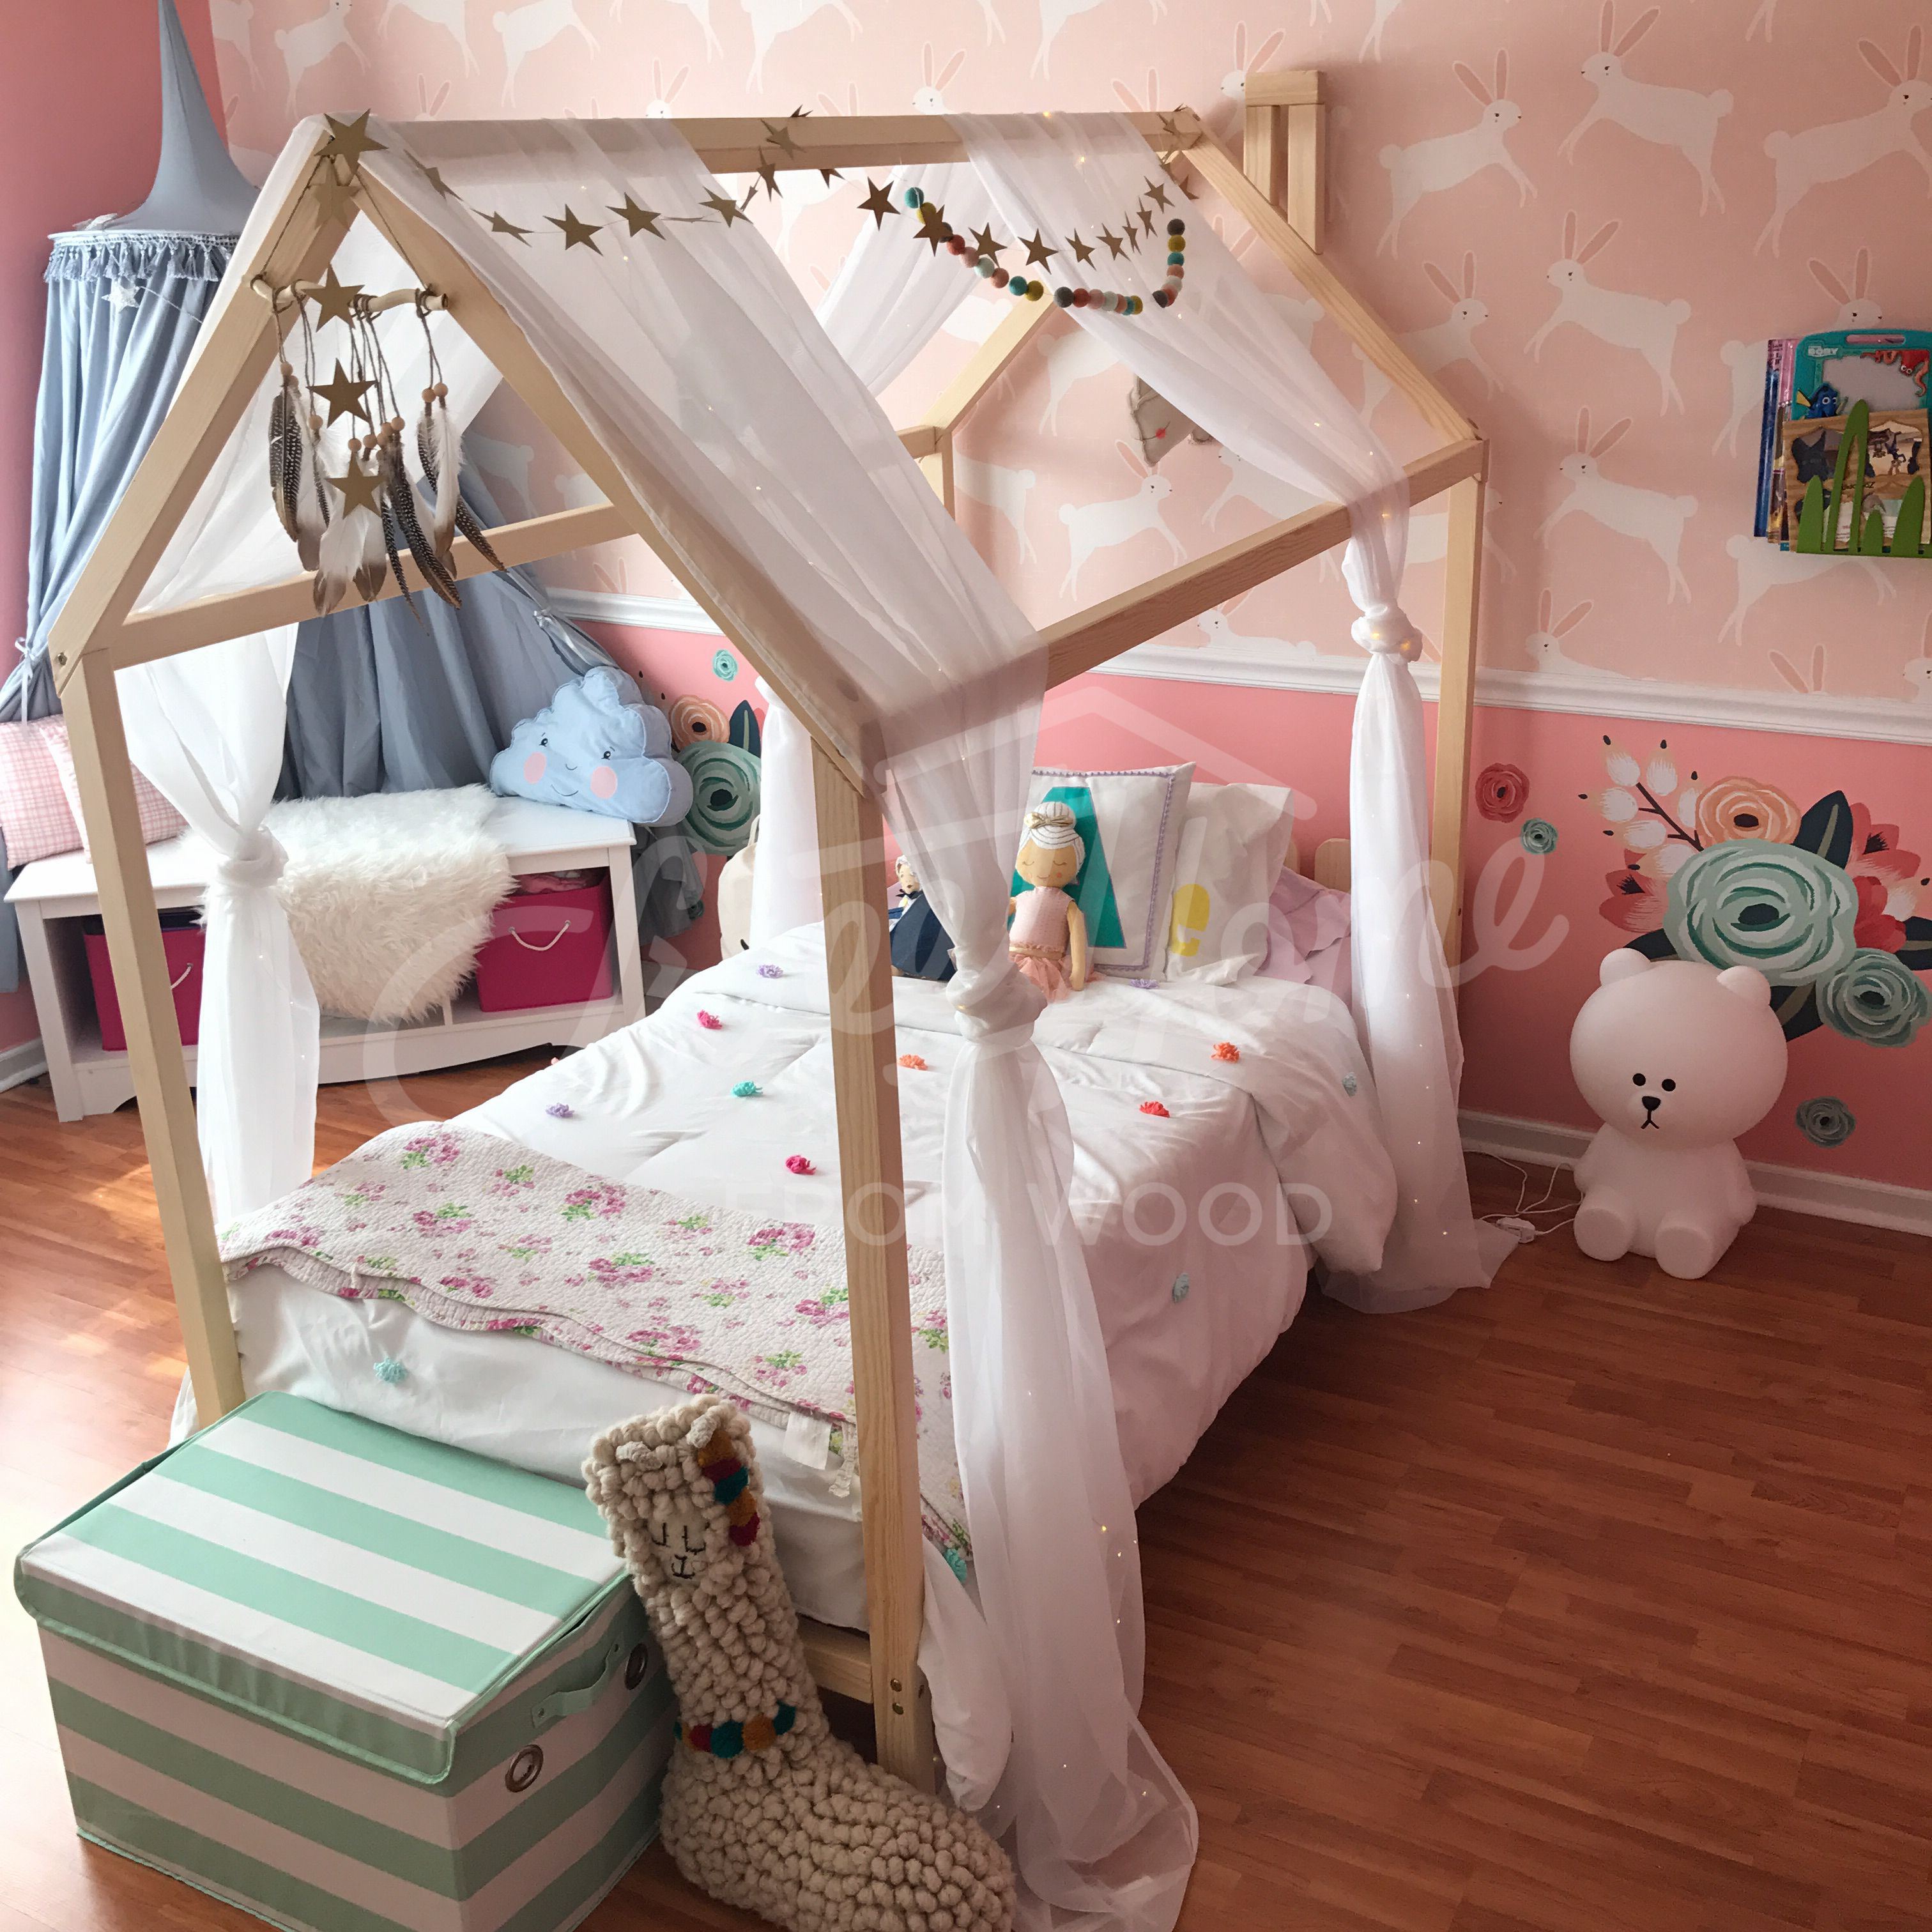 toddler bed house bed twin size frame bed montessori bed children bed nursery bed nursery crib baby bed wood bed teepee